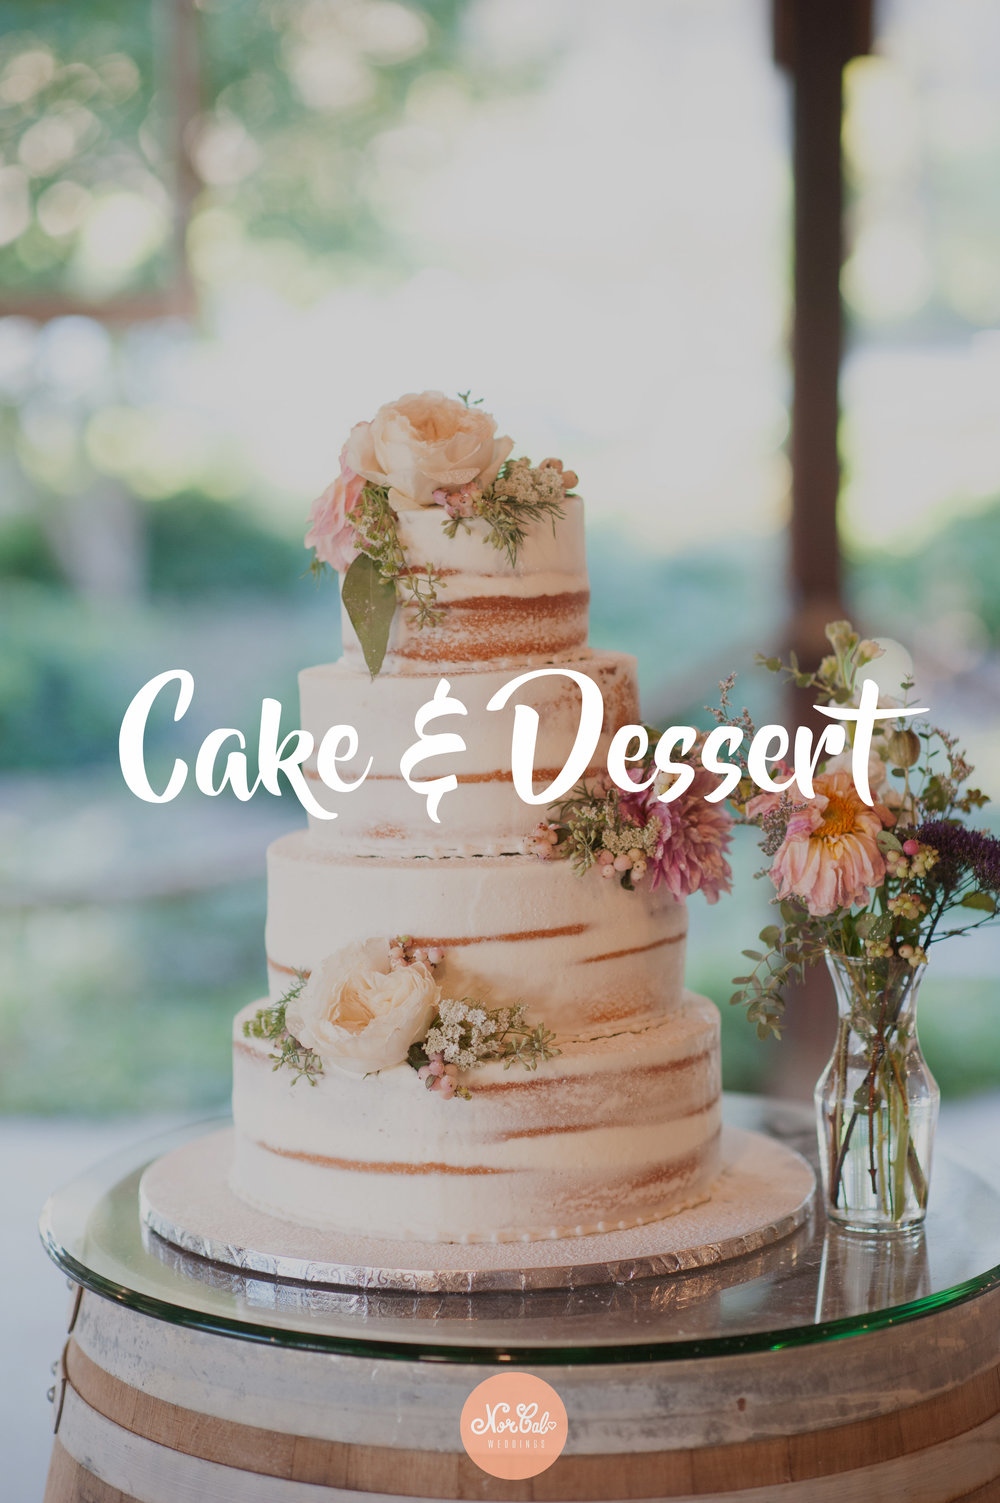 NorCal Weddings Cake and Dessert Services.jpg